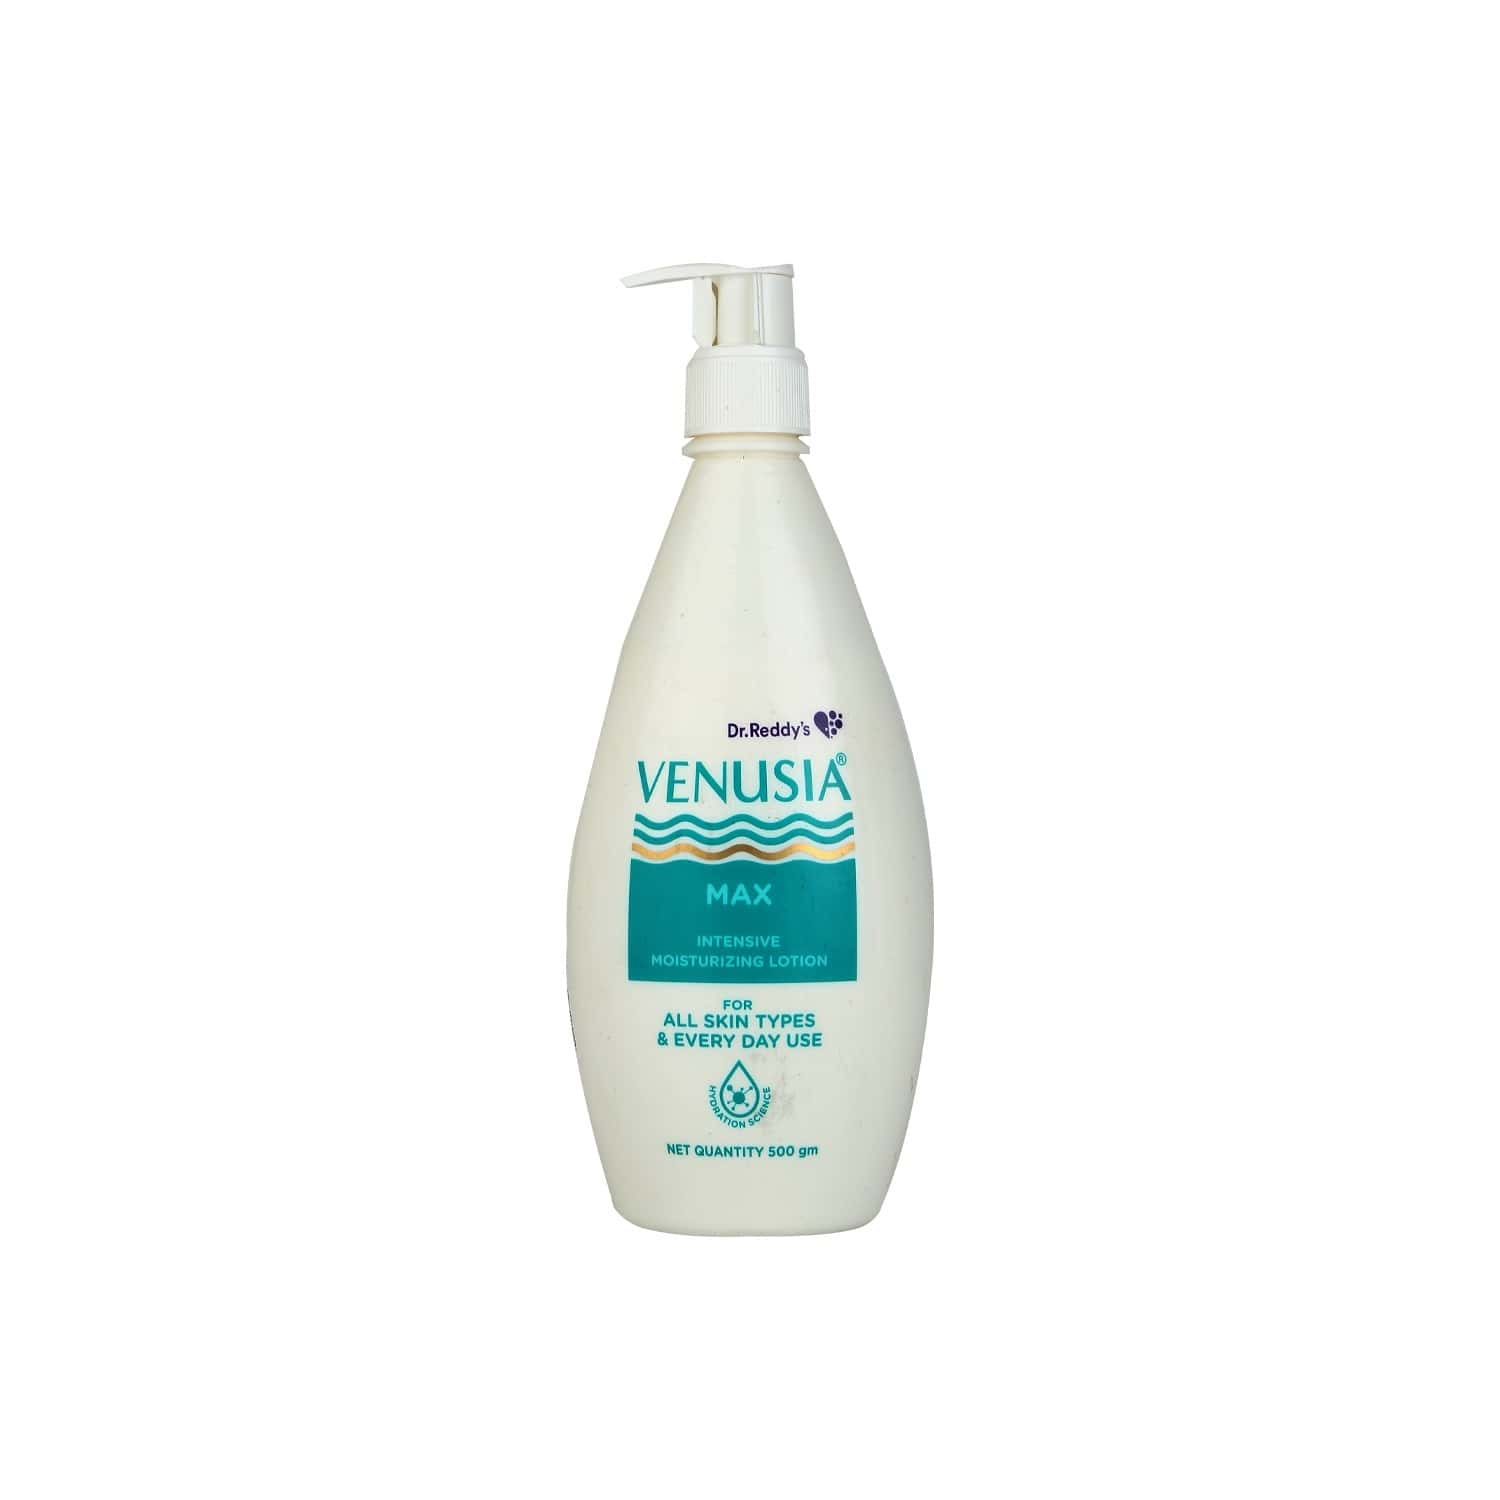 Venusia Max Intensive Moisturizing Lotion For Everyday Use - 500g